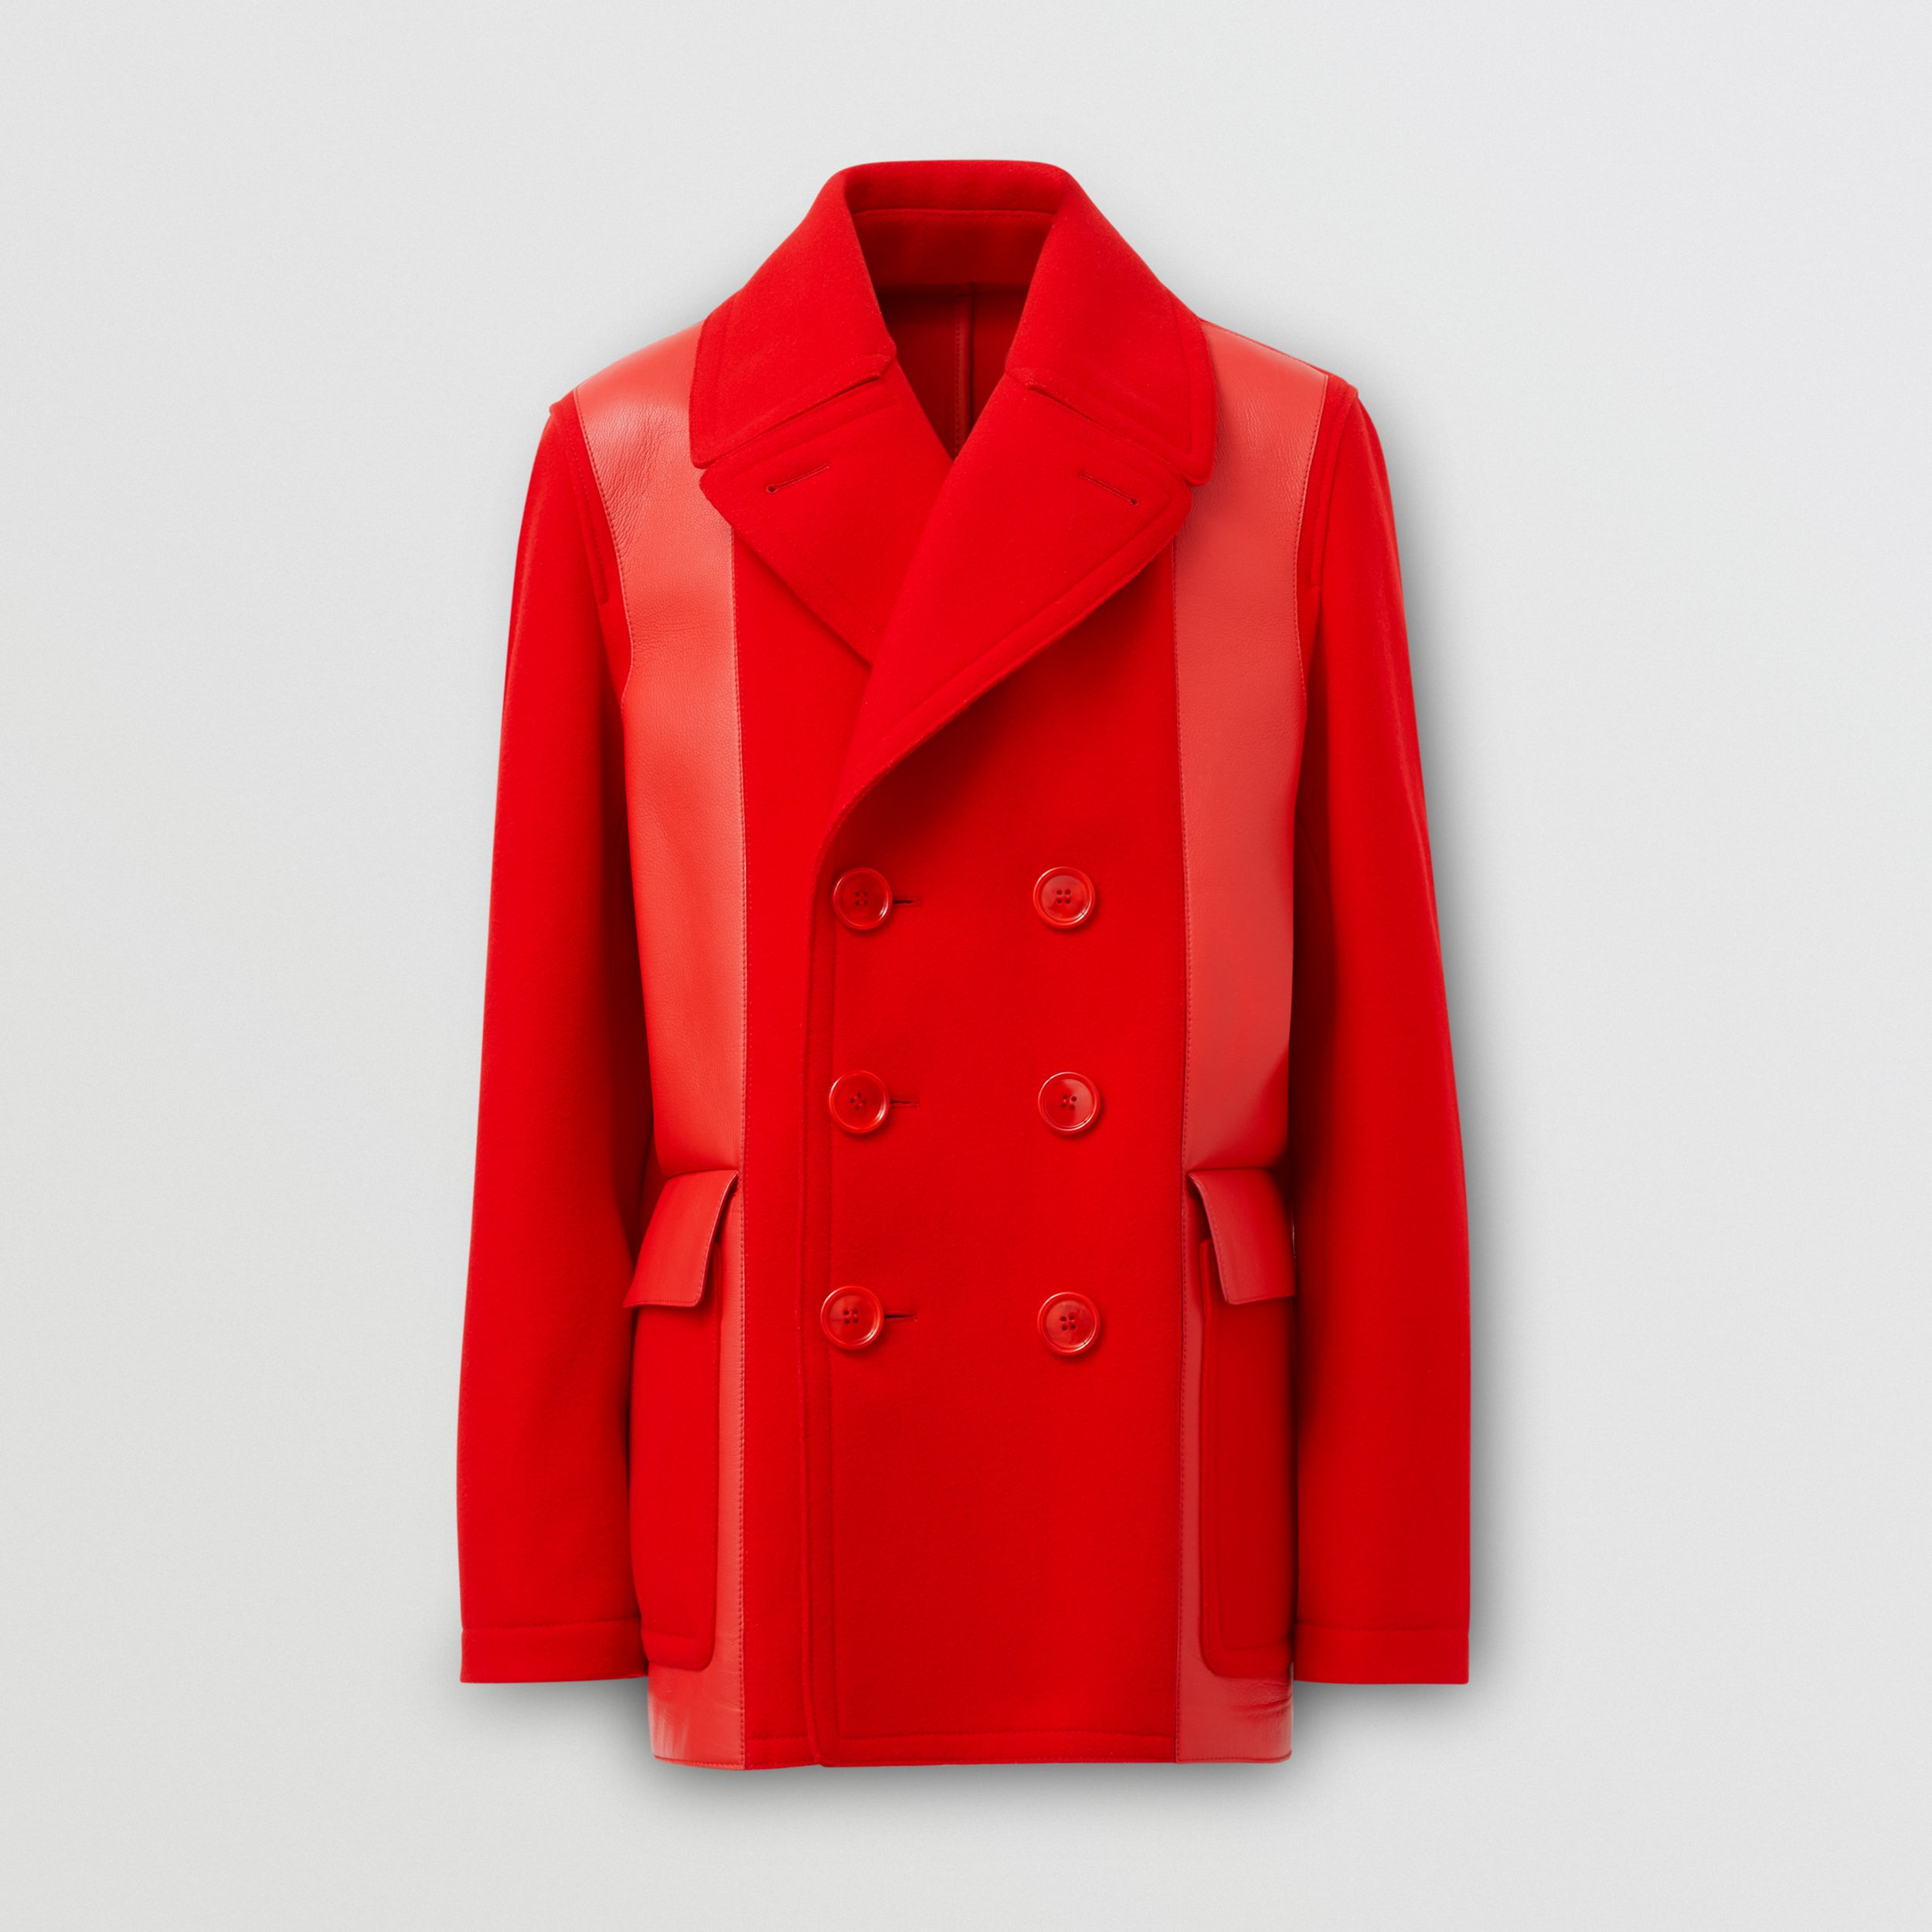 Lambskin Panel Technical Wool Pea Coat in Bright Red | Burberry - 4